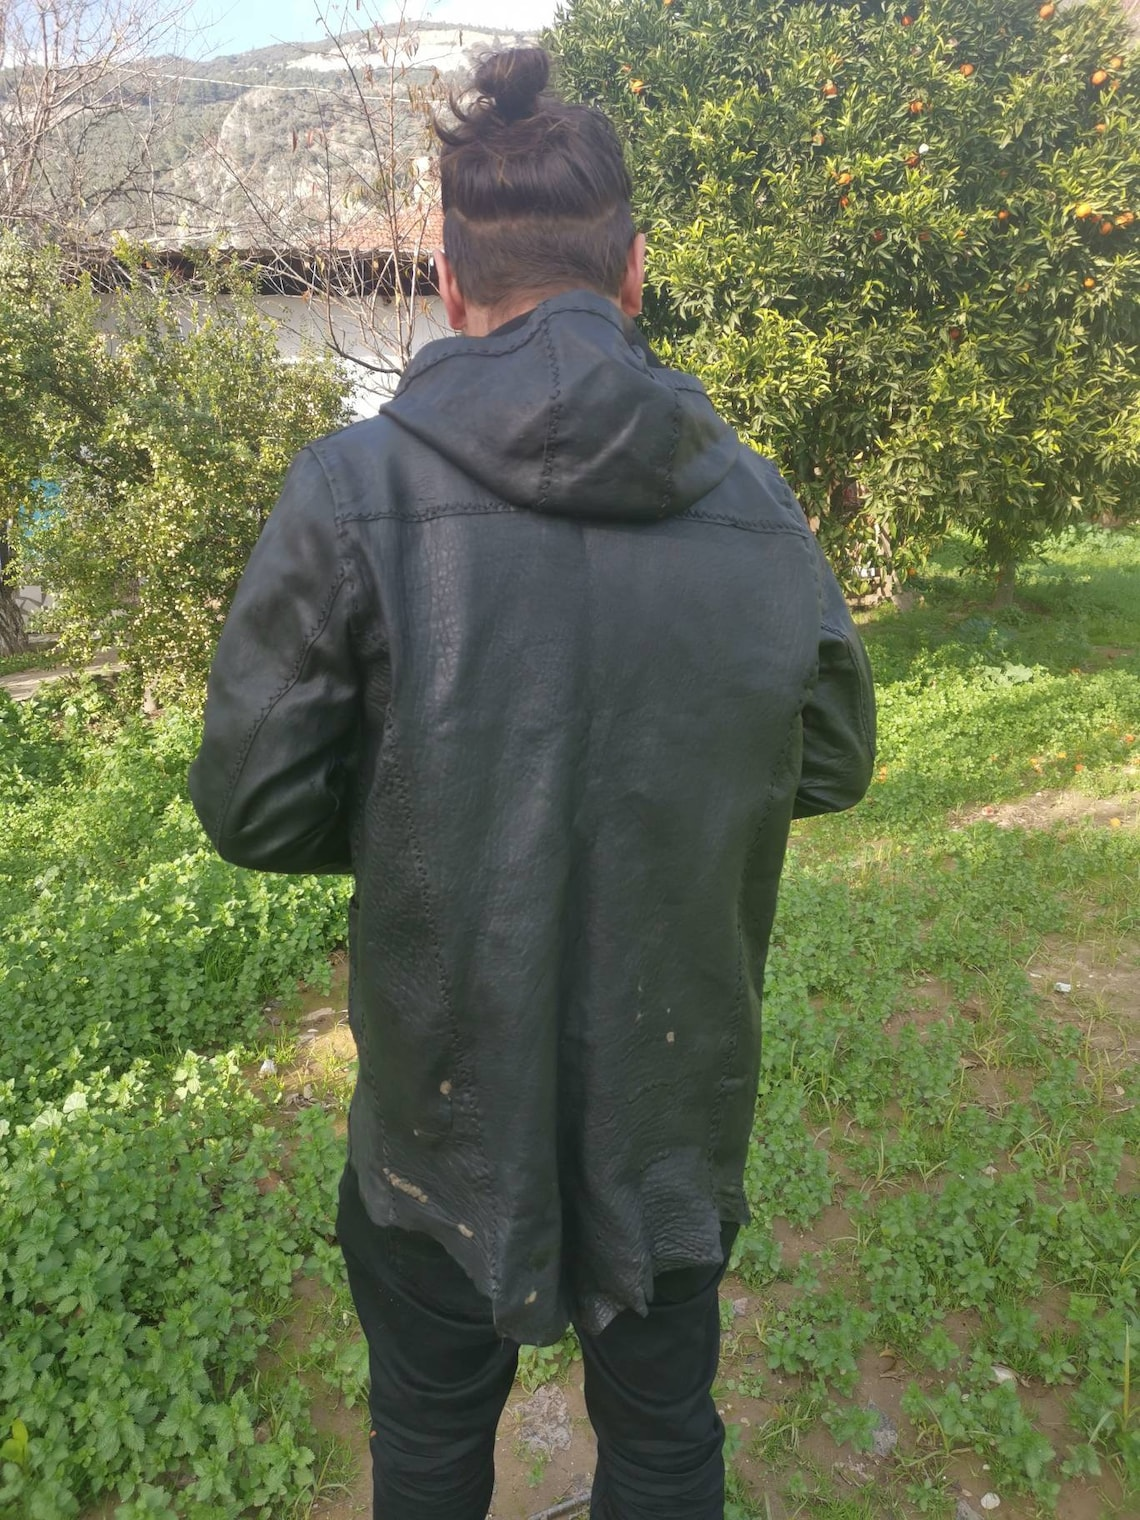 Mens Handmade Leather Jacket, Hoodie, Hand Stitch, Sheep Skin, Genuine, Hippie Style, Festival Clothes, Gift For Him